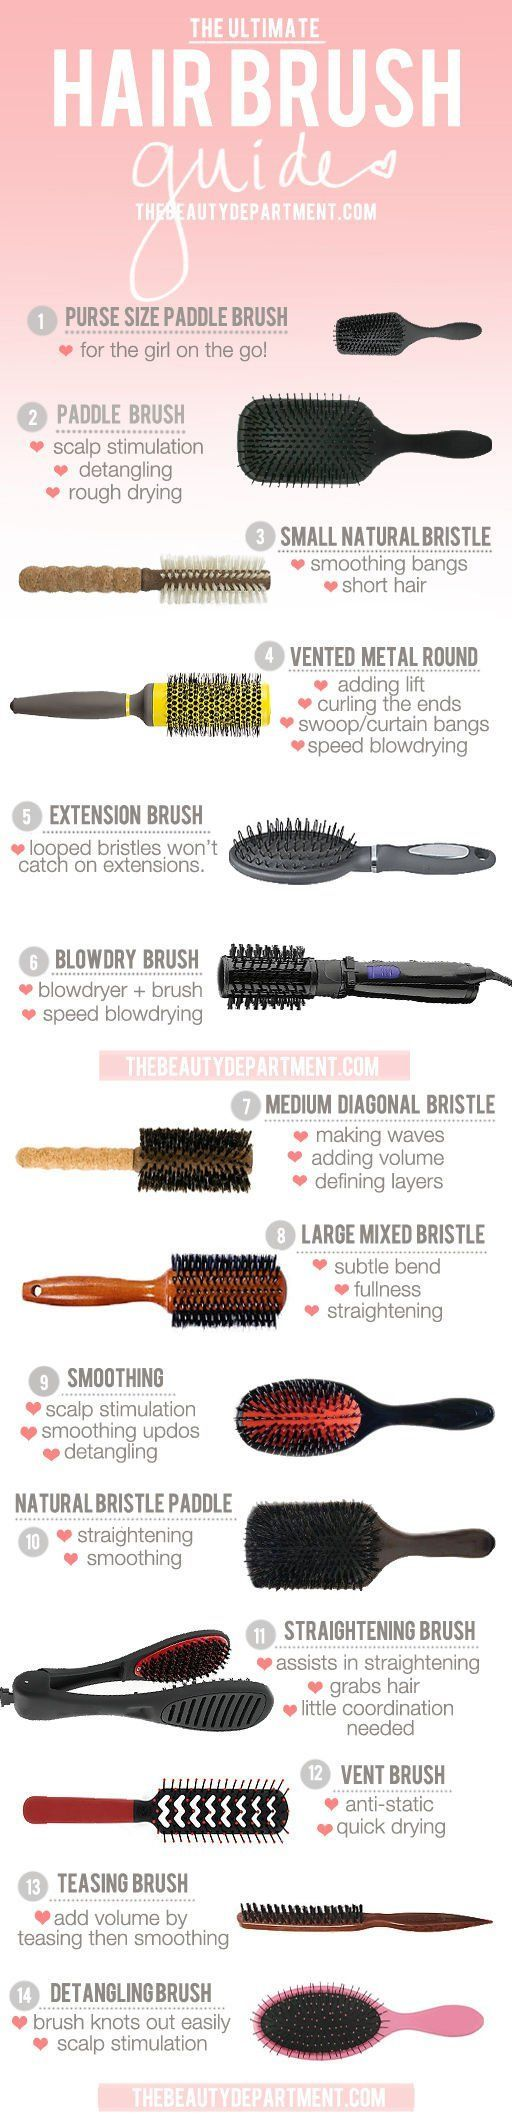 The Best Hair Brush For Your Hair Type   Here's A Great List Of Beauty Tips That Will Really Help Your Hair A Lot! by Makeup Tutorials at   http://makeuptutorials.com/best-hair-brush-makeup-tutorials